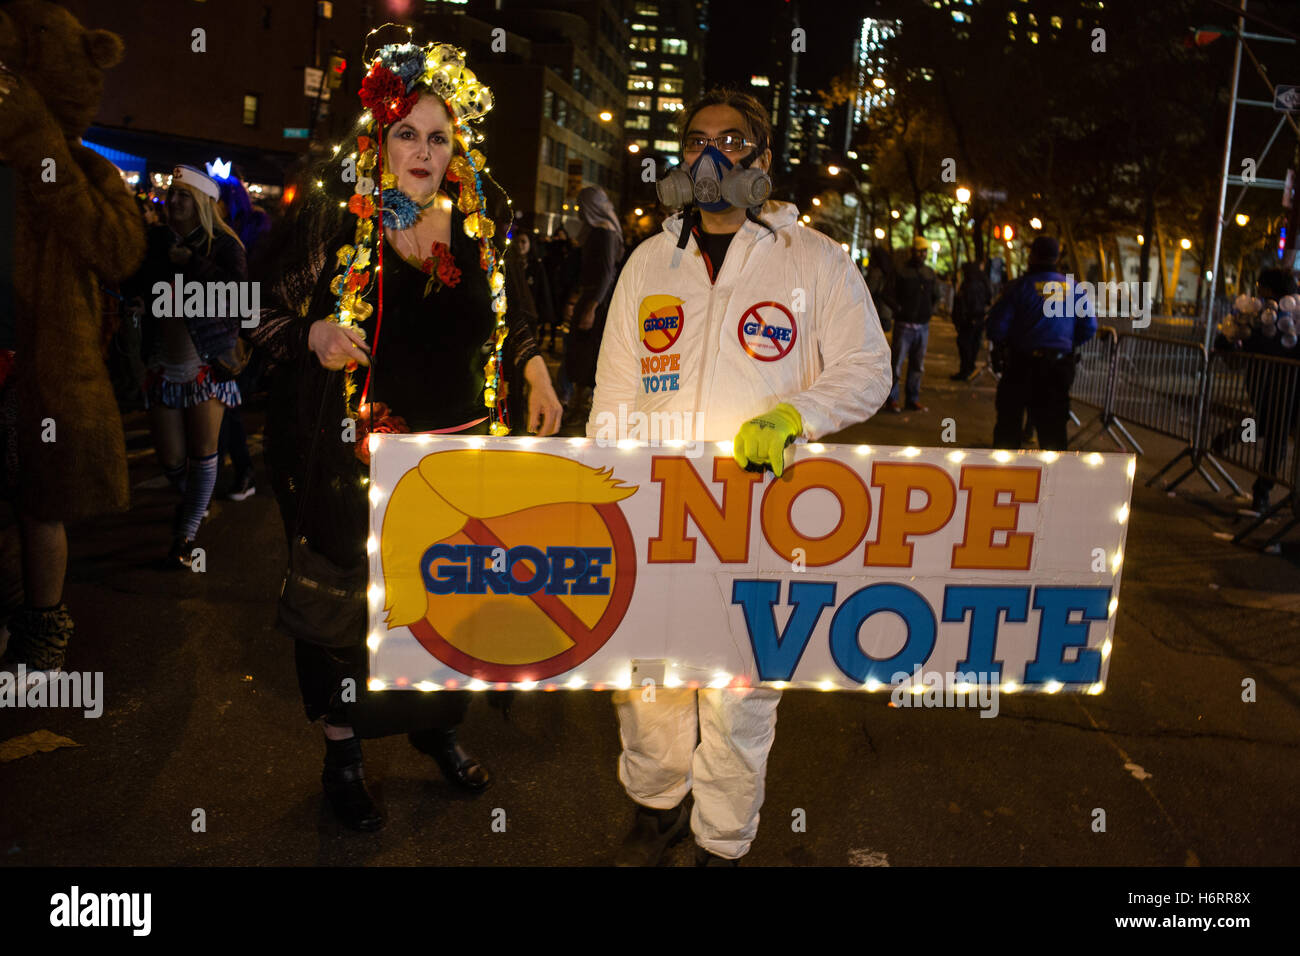 New York, NY - 31 October 2016. Two people walk behind a sign that reads Grope Nope Vote, the 'grope' behind - Stock Image